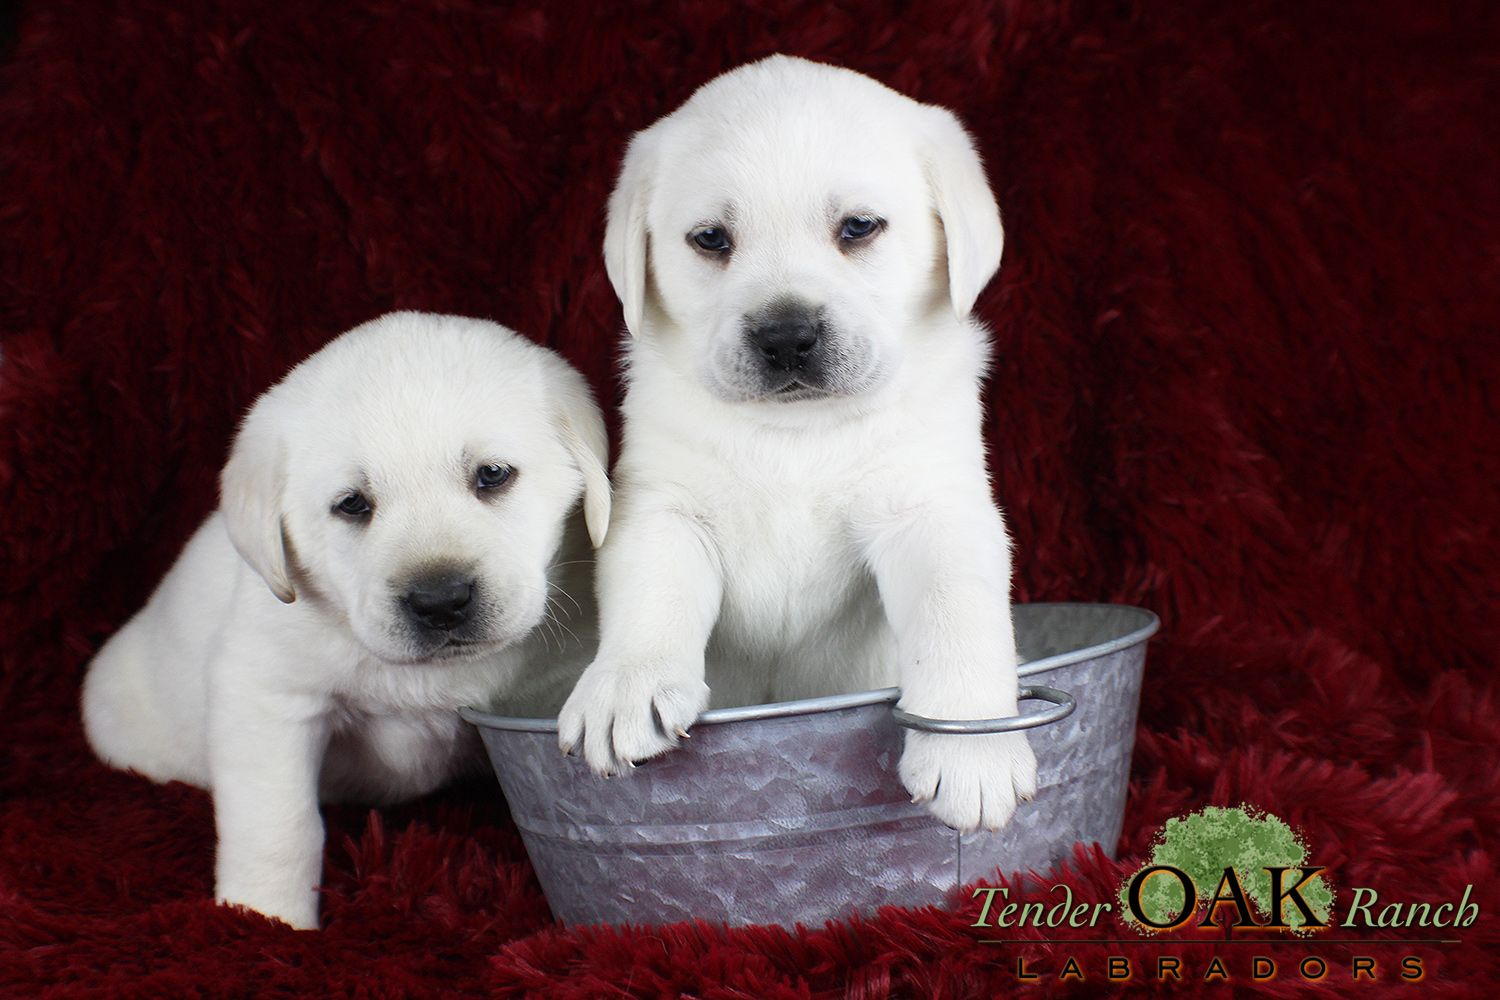 Labrador Puppies For Sale In San Diego Labrador Puppy Labrador